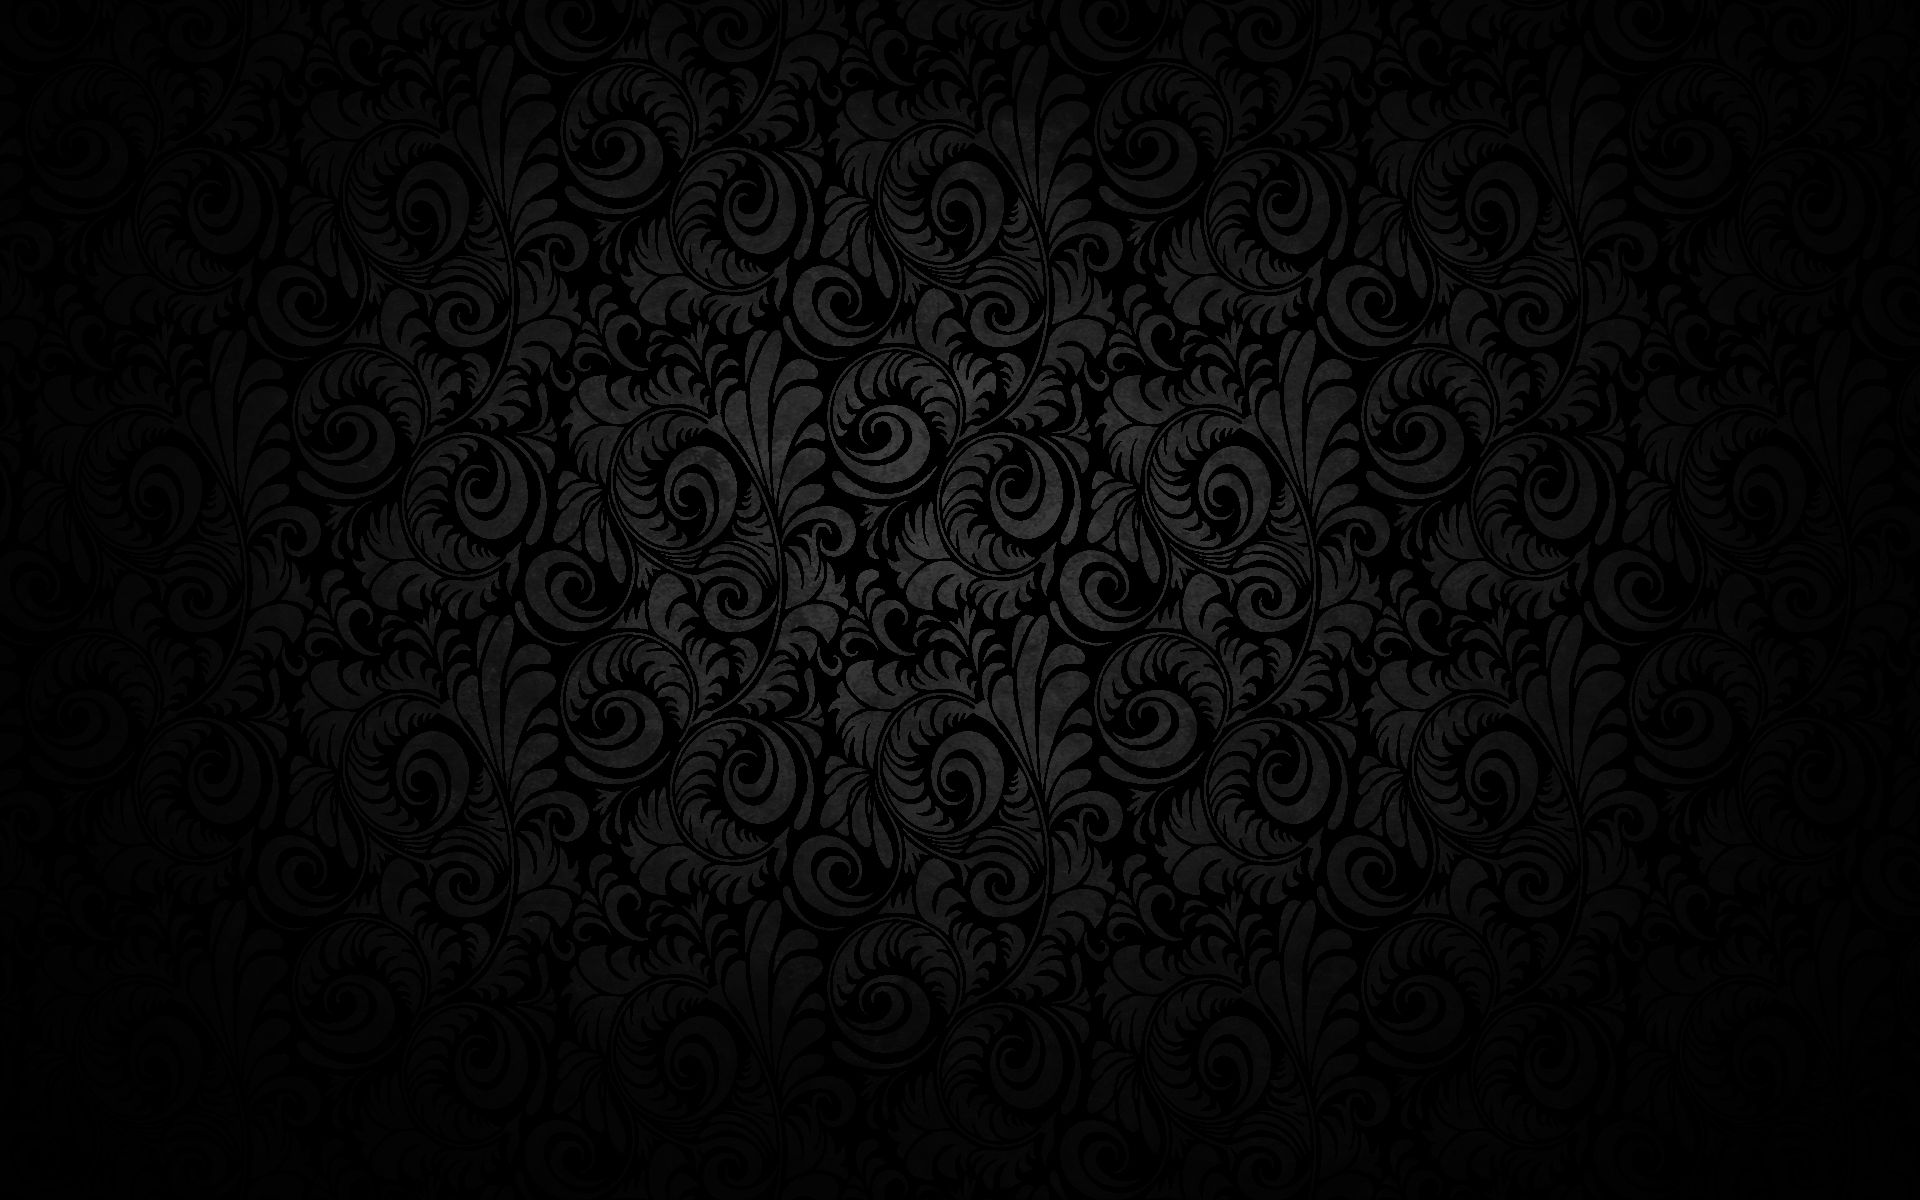 Black Wall Paper Decor : Black floral texture pattern design wallpaper